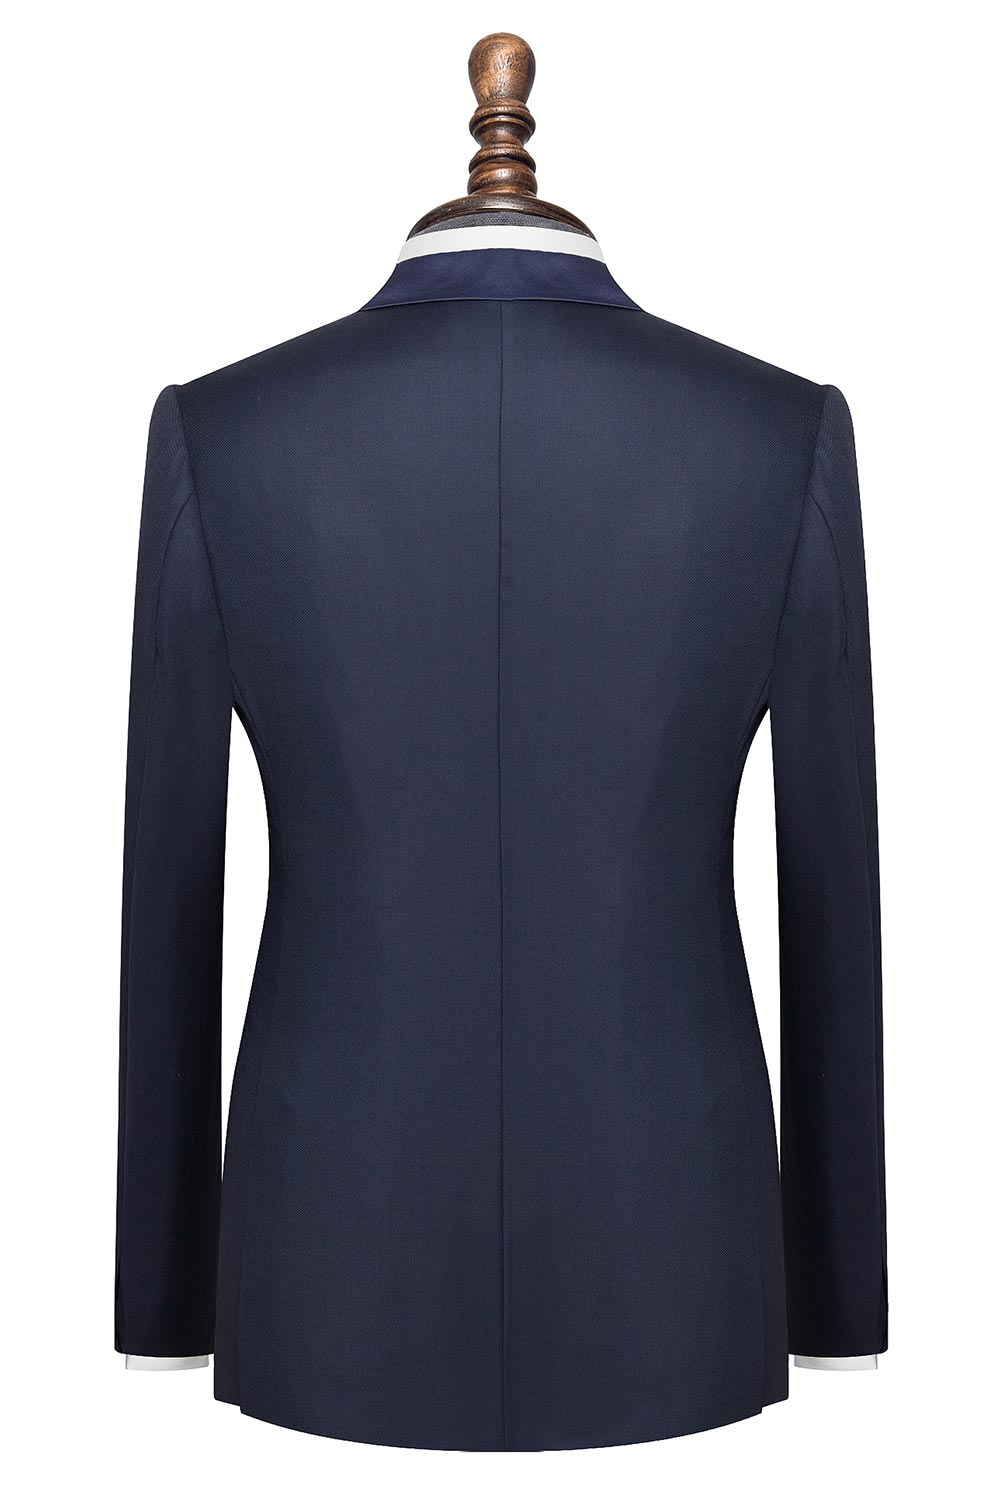 InStitchu Collection The Harlow Jacket